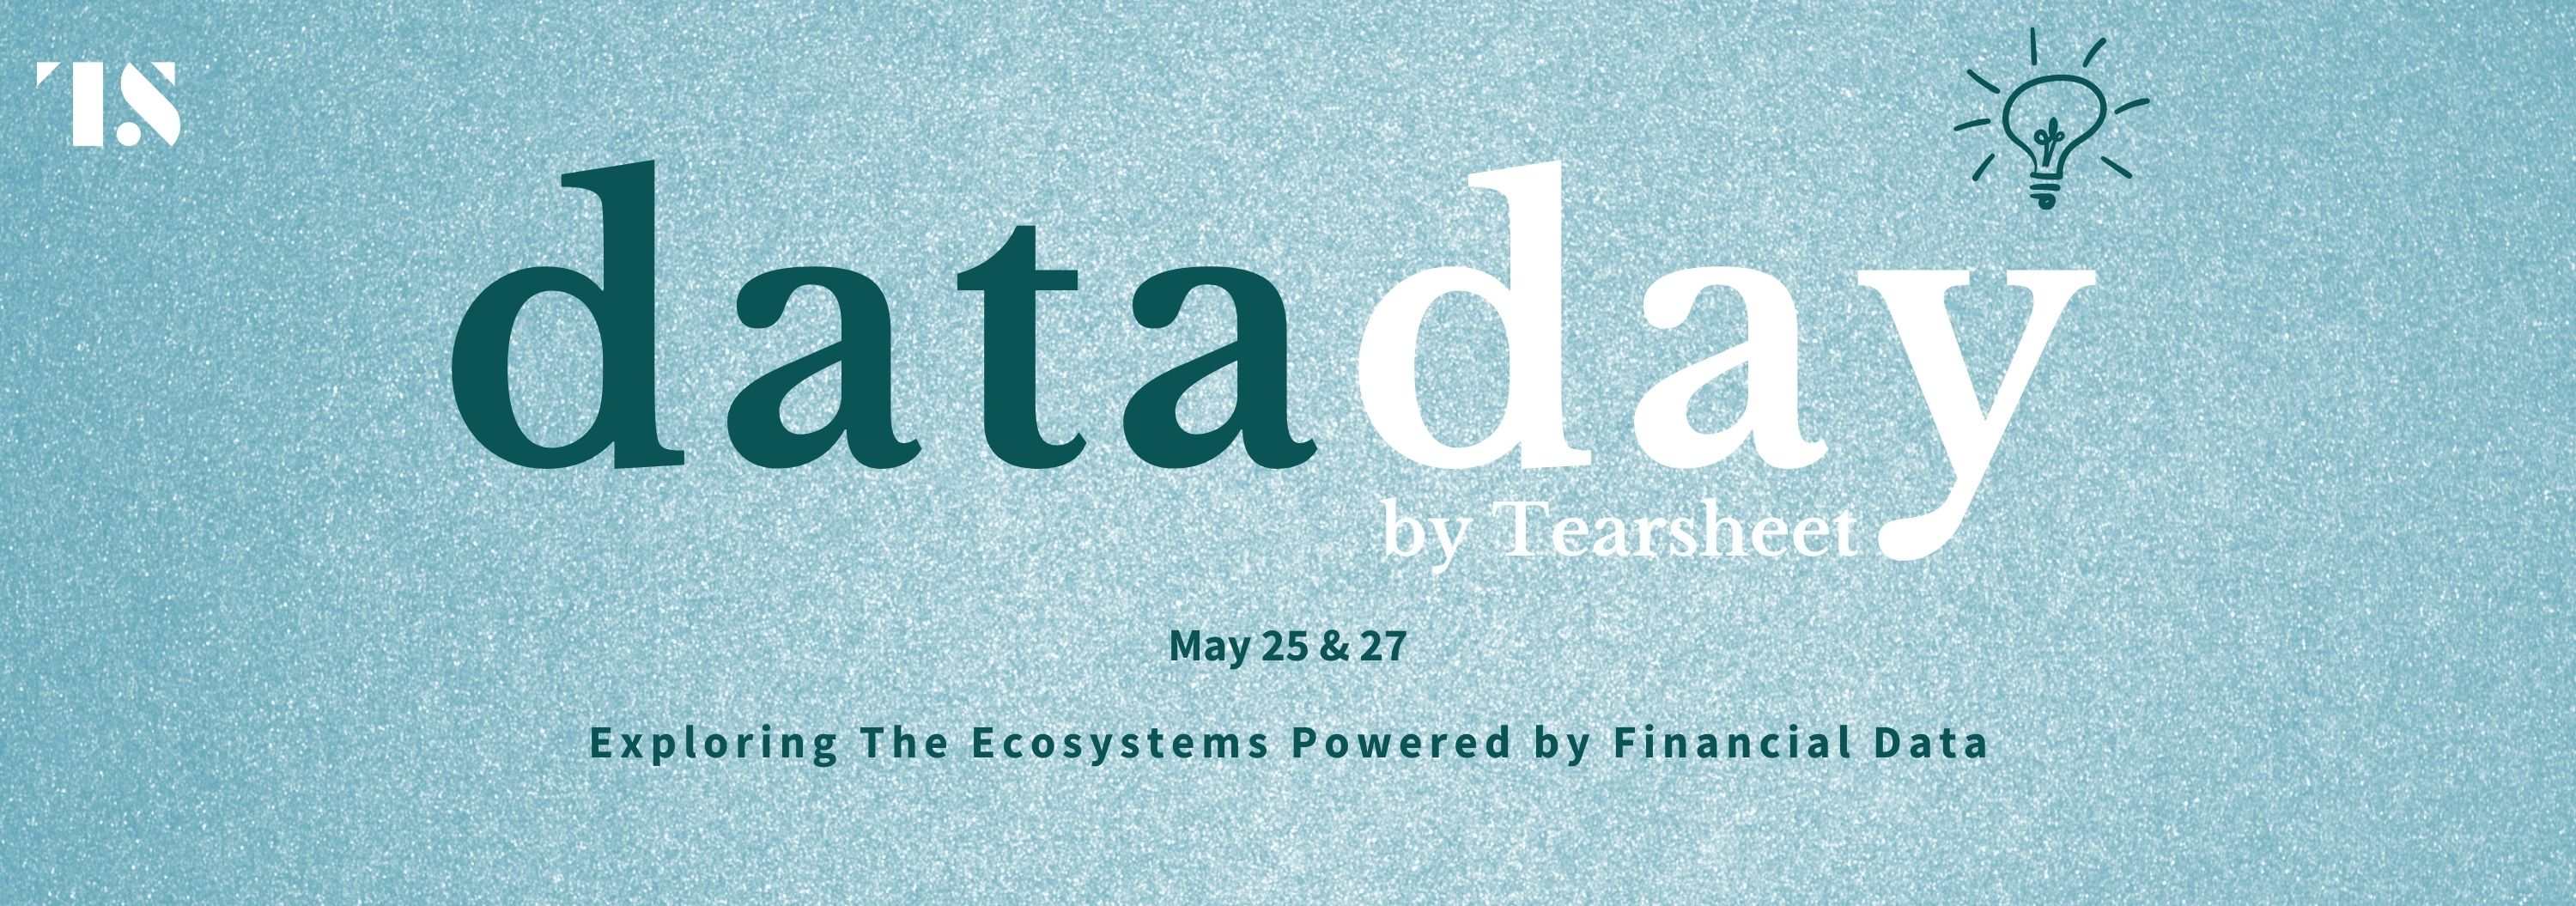 Tearsheet's DataDay Conference 2021